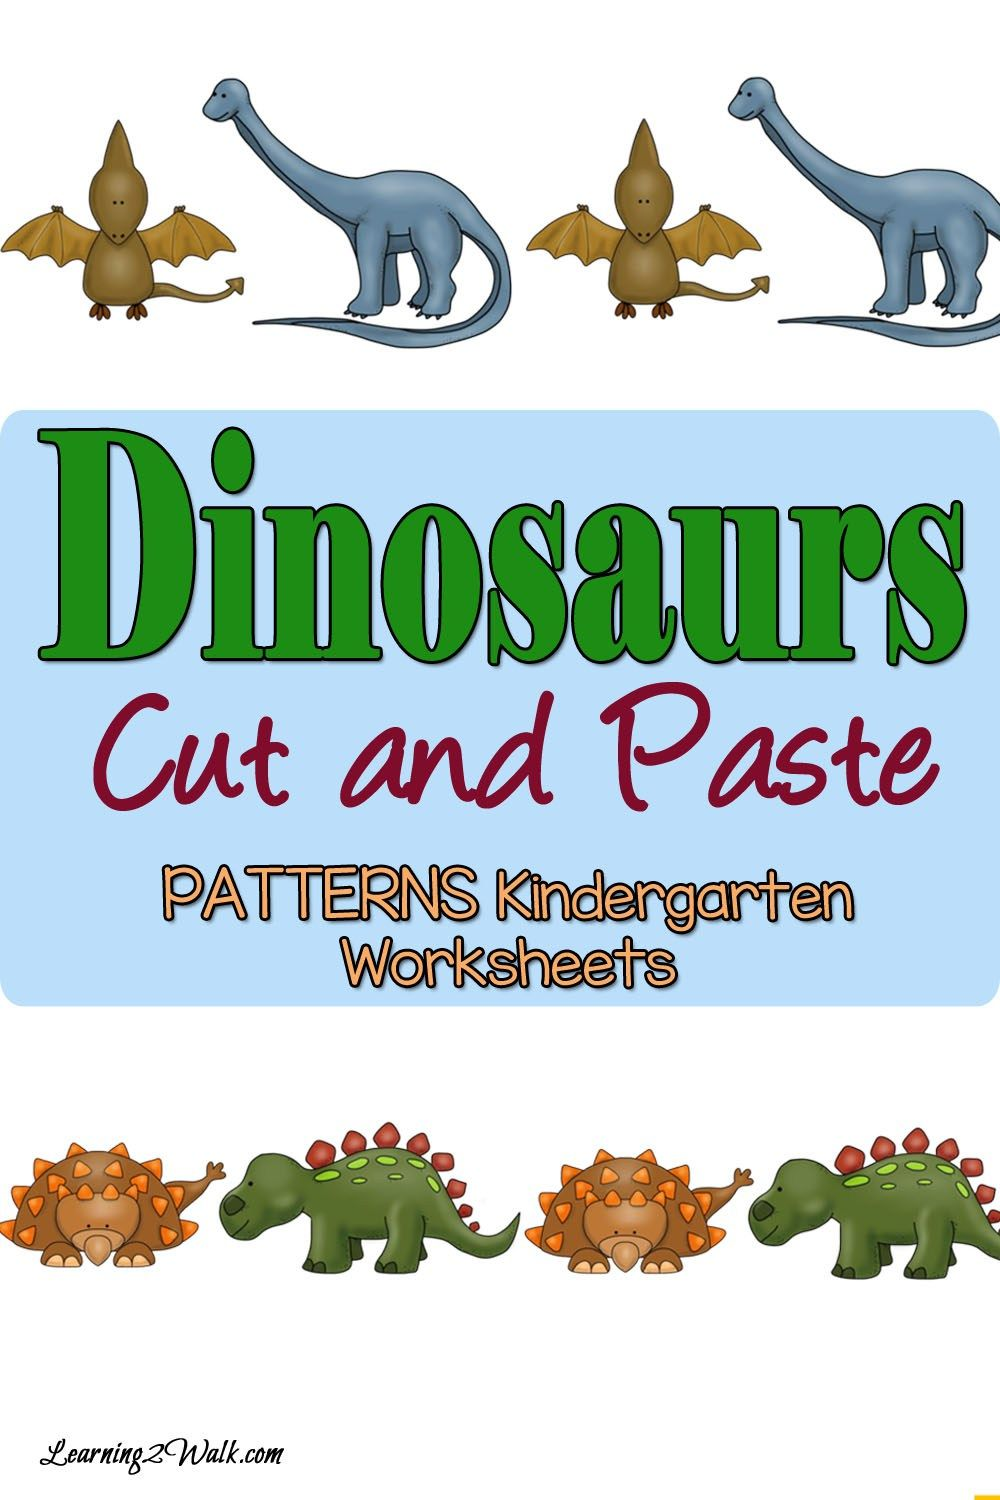 dinosaurs patterns worksheets for kindergarten worksheets for kindergarten patterns and cut. Black Bedroom Furniture Sets. Home Design Ideas